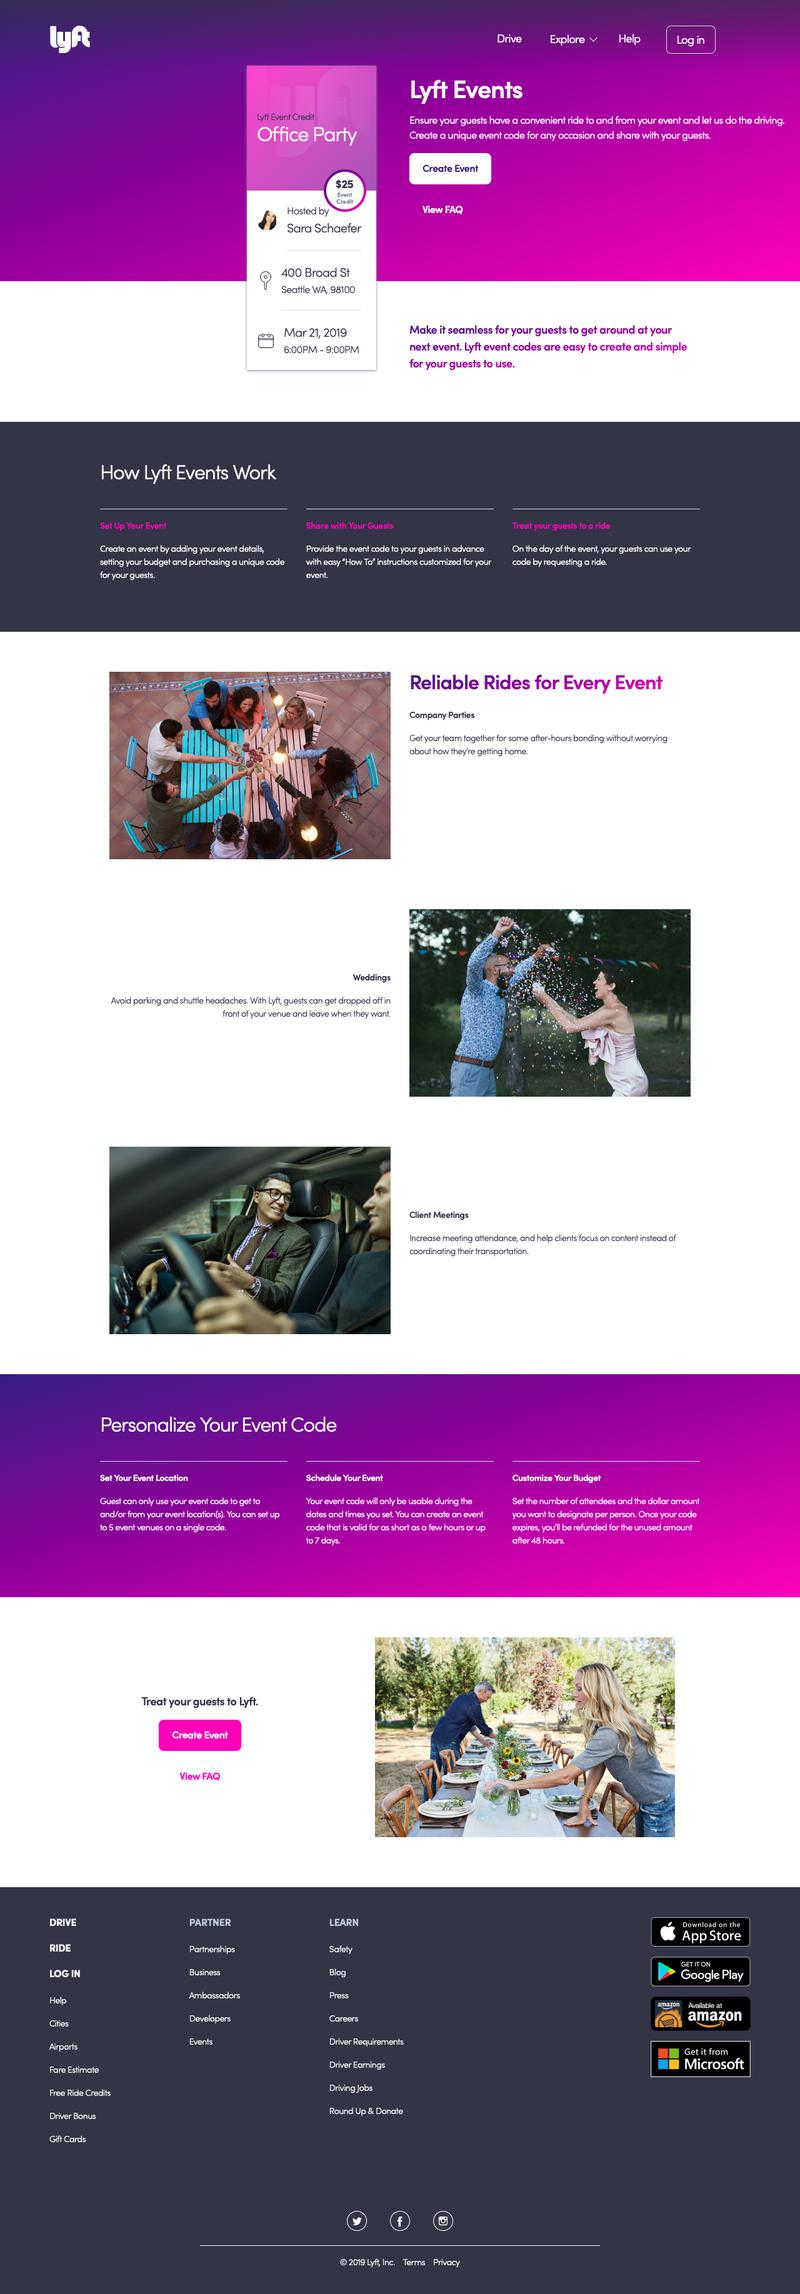 Lyft | Competitive Intelligence and Insights | Crayon